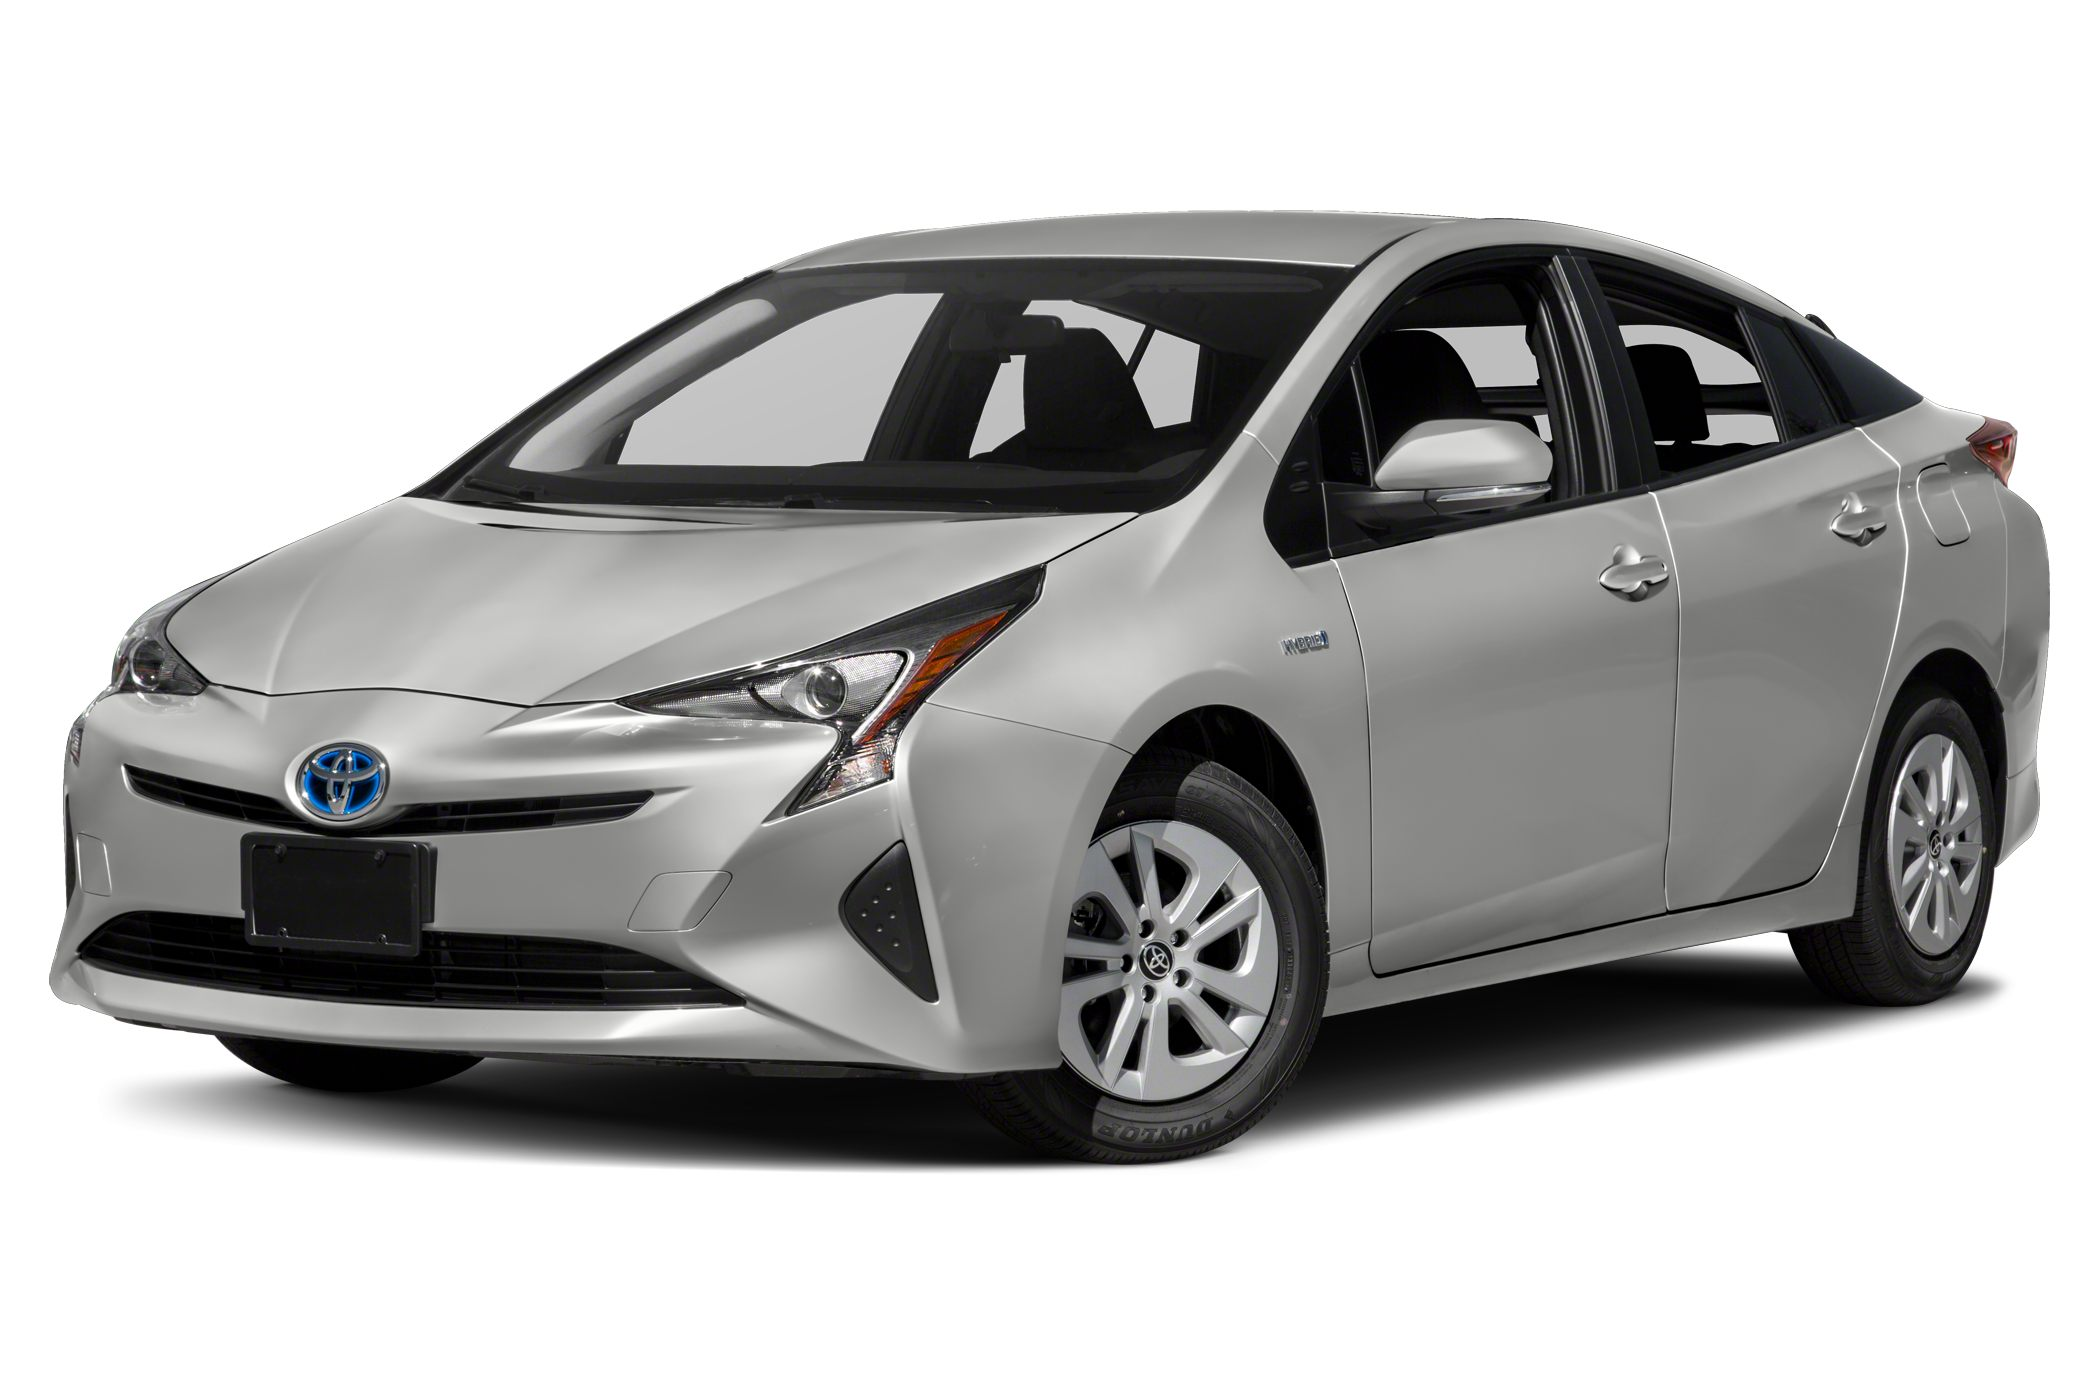 2016 Toyota Prius Three Introducing the 2016 Toyota Prius A great vehicle and a great value Toyo